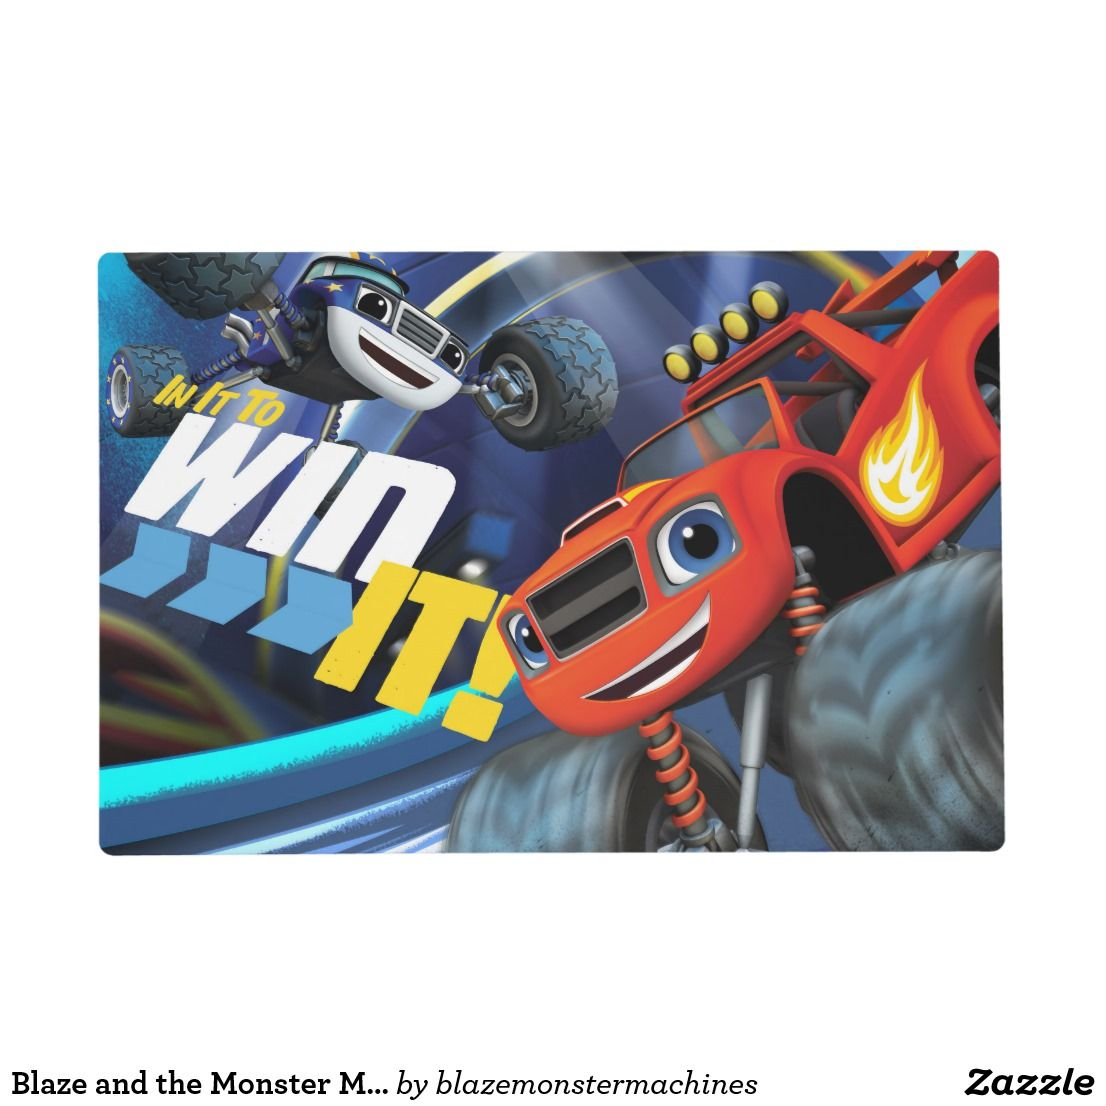 d9be6c882141 Blaze and the Monster Machines | In It To Win It Placemat | Place ...